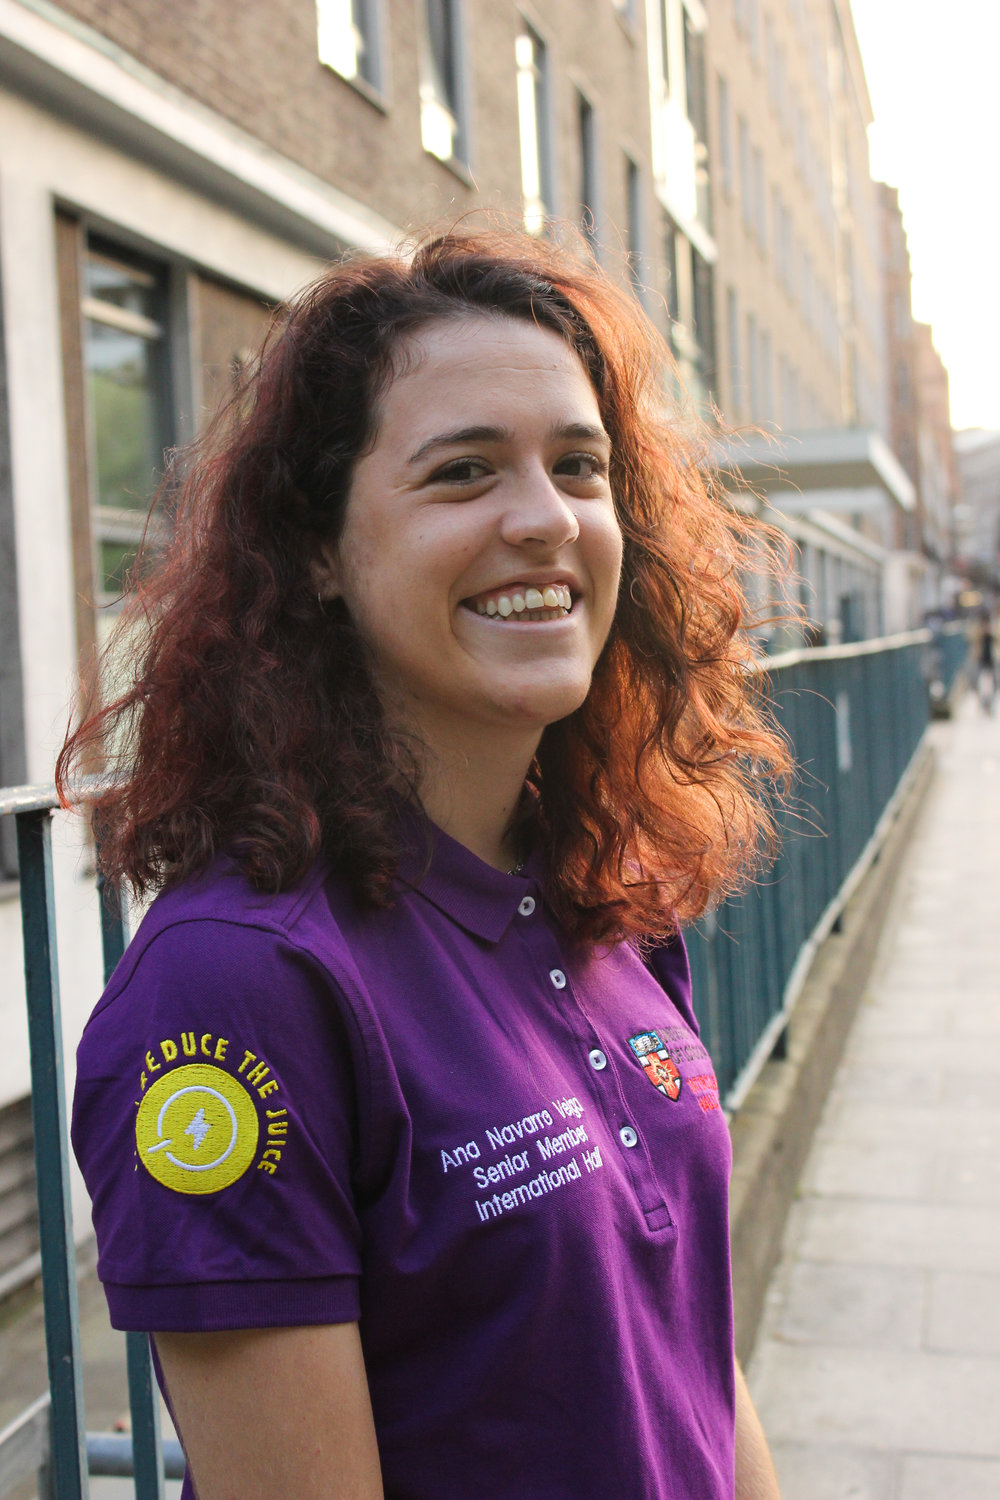 Ana Navarro Veiga Senior Member Ana is studying Politics, Philosophy and Law at King's College London.  At IH, Ana (with Ed) is responsible for advising the IH Community Volunteers.  Fun fact: Ana has a twin sister.  Ana can be reached at ana@internationalhall.com.